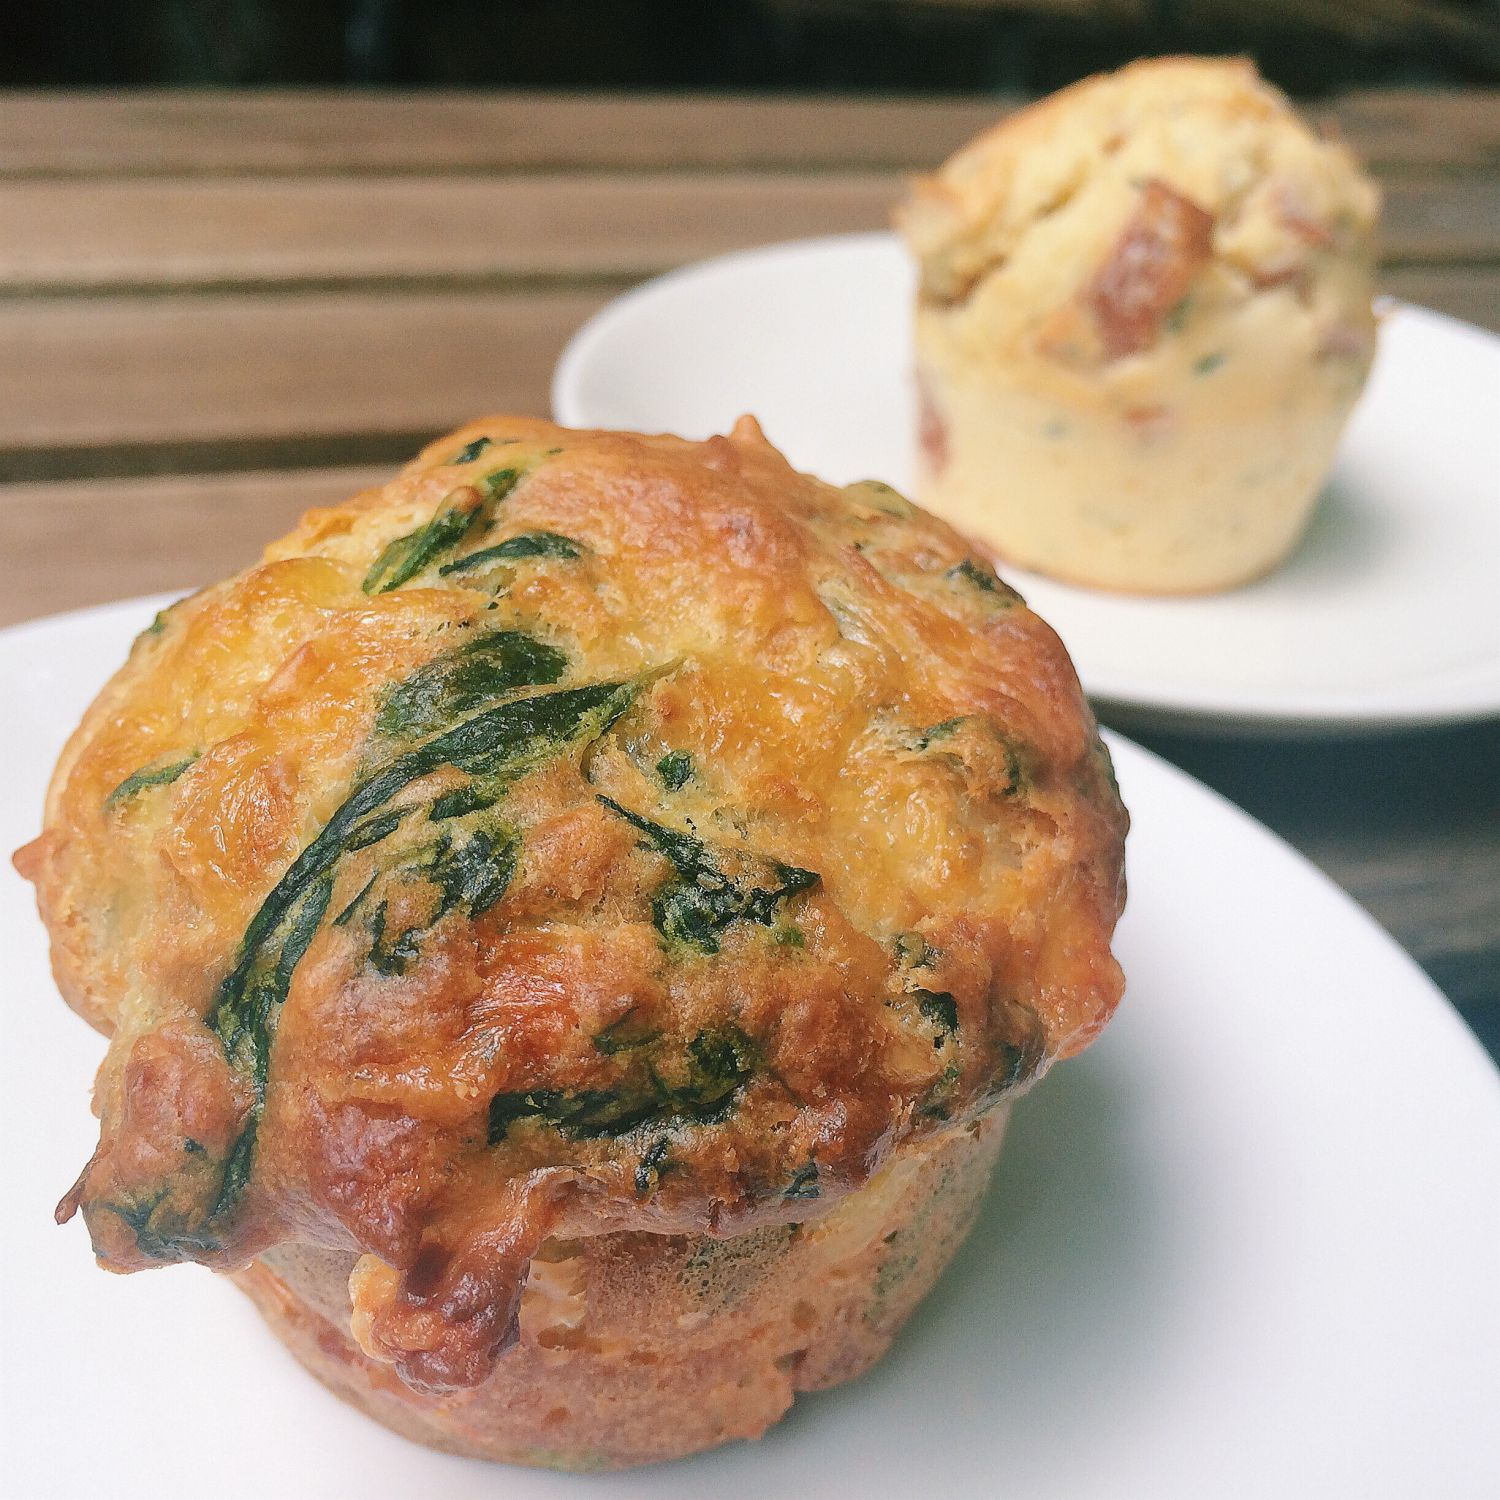 Spinach & Cheese Muffin - Richmond Station